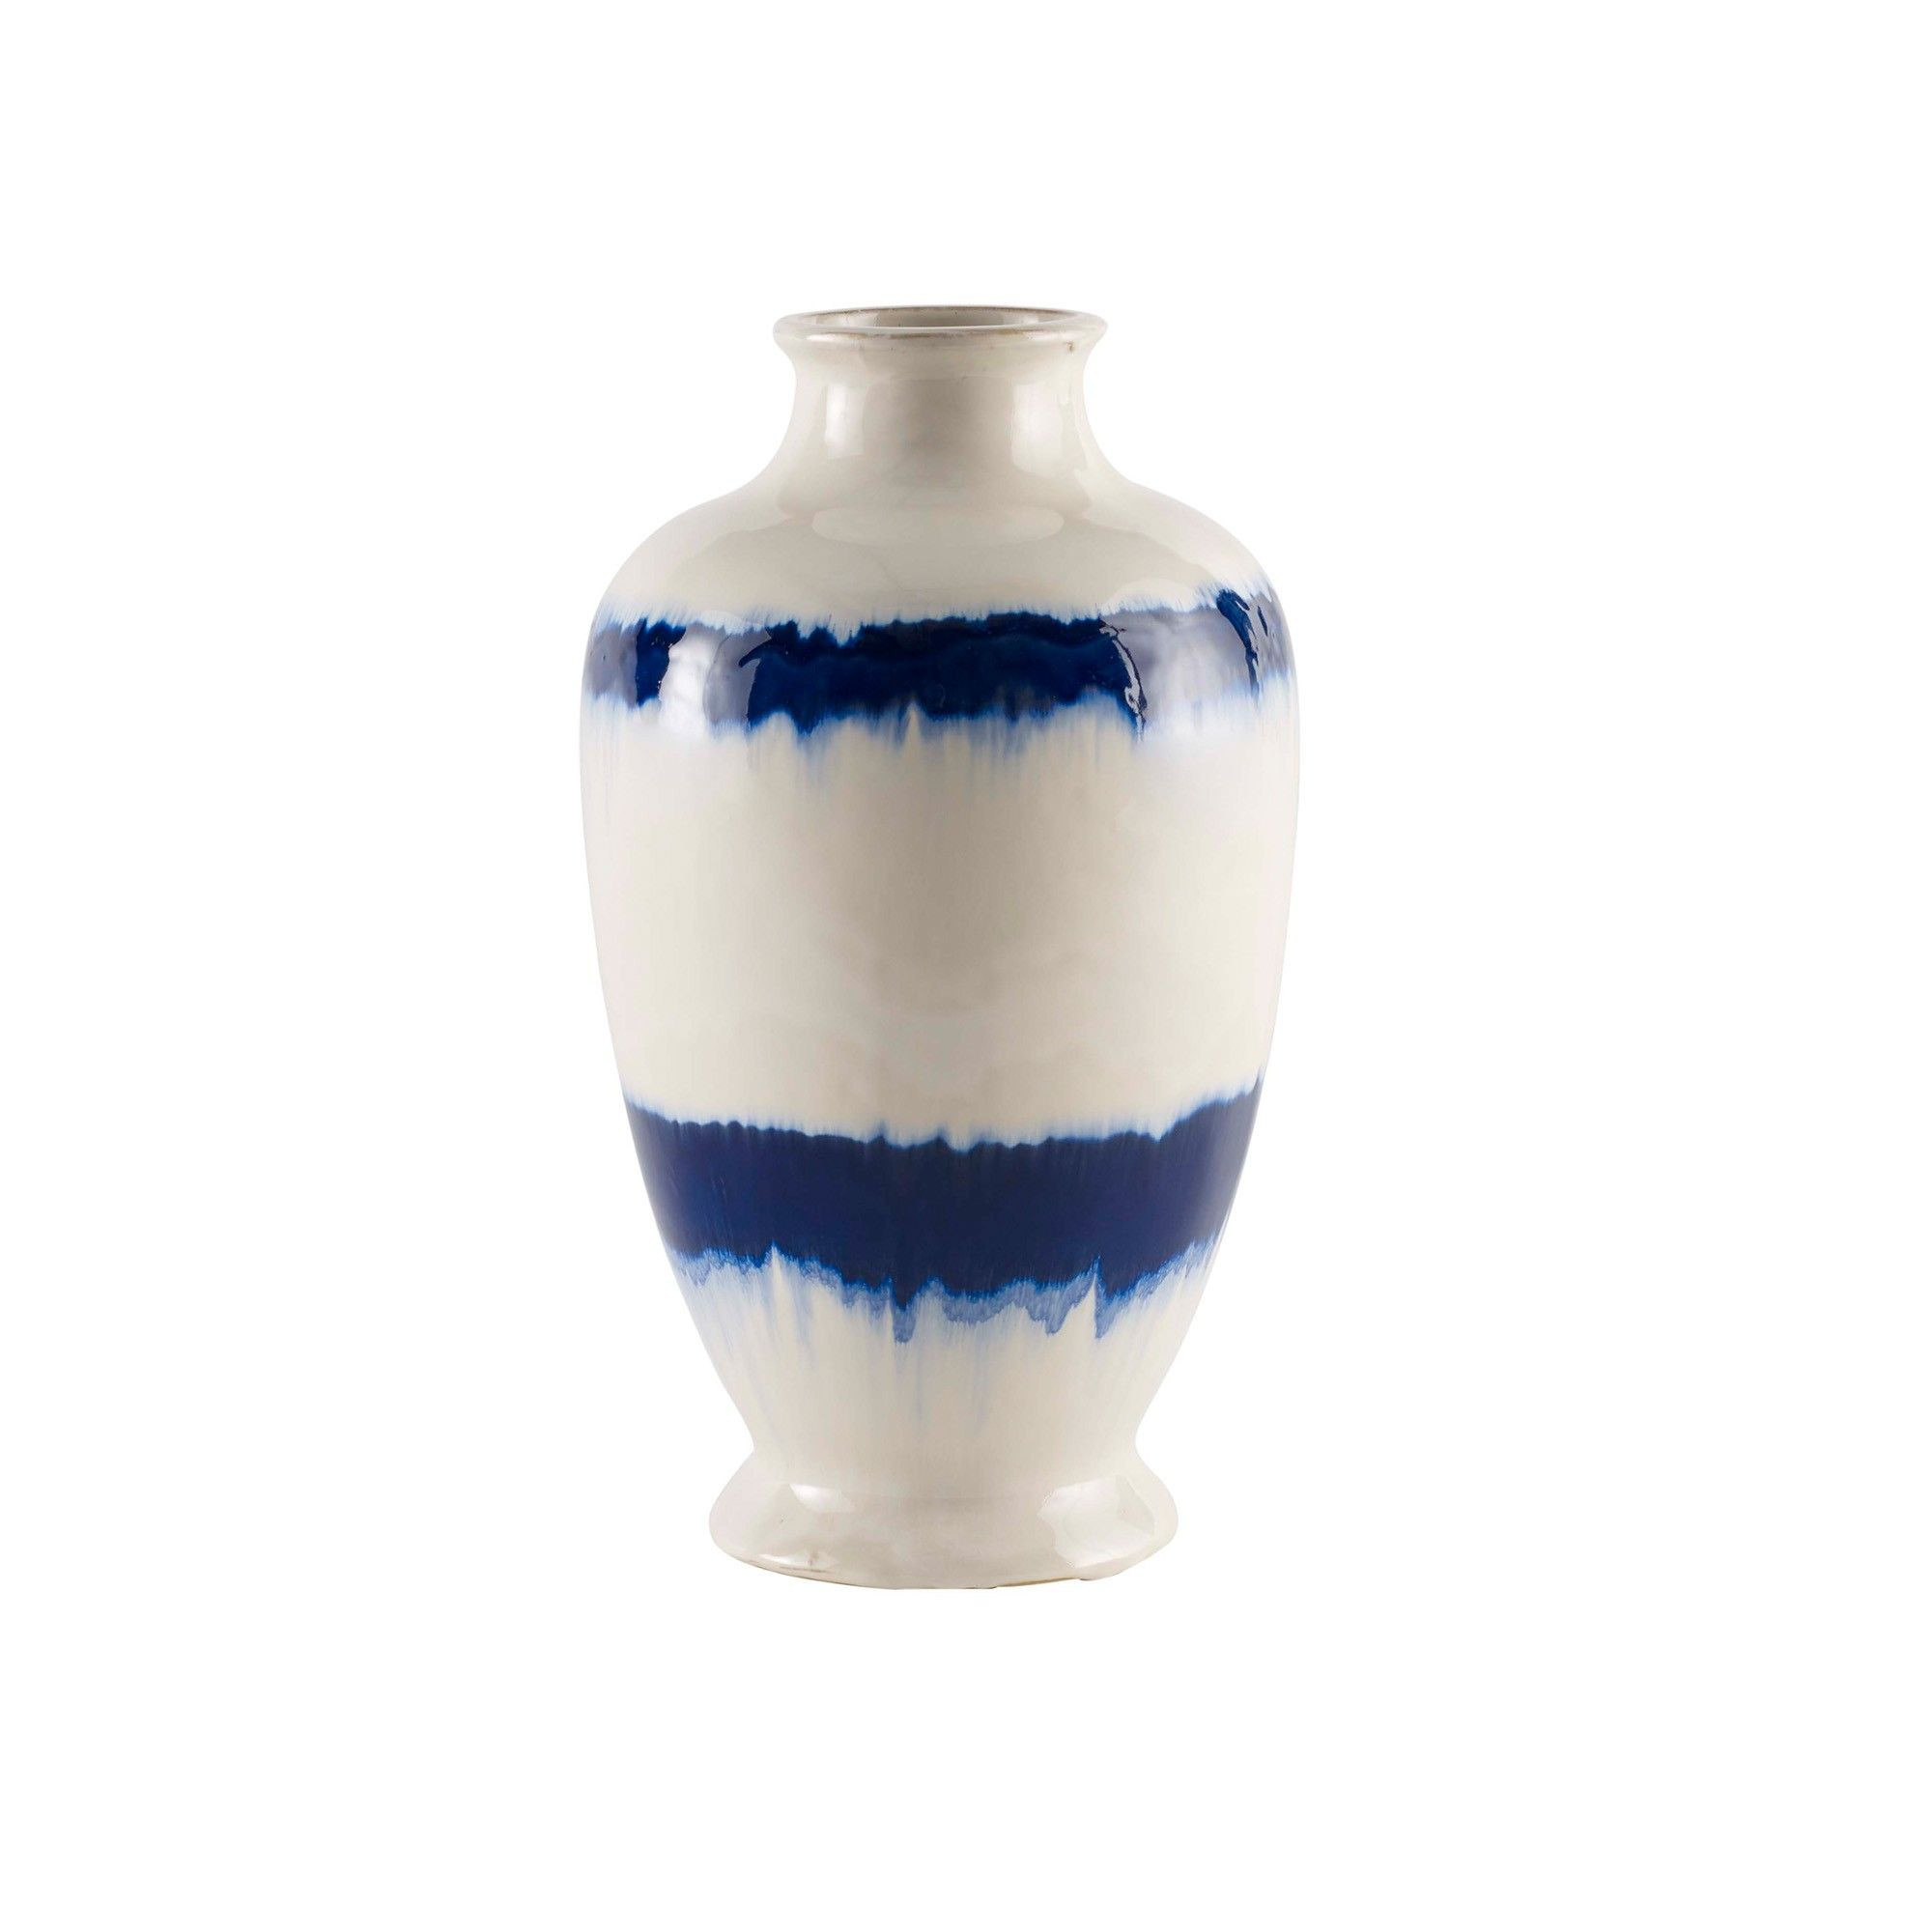 brushed nickel vase of vivian vase white blue colour final project pinterest ceramic with regard to vivian vase white blue